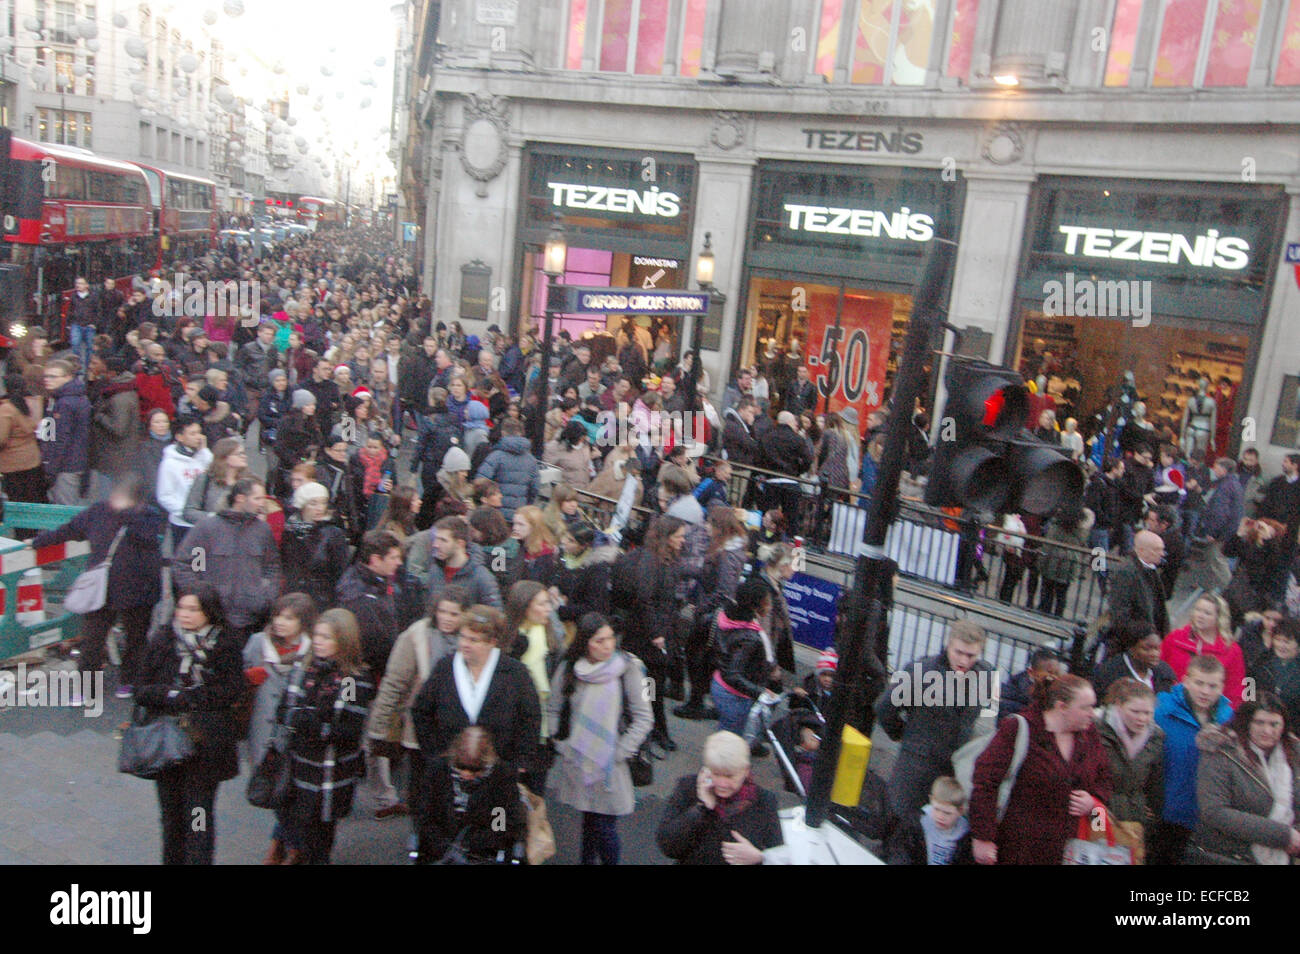 London, UK. 13th December, 2014. Christmas shoppers out in the West End of London as only 12 days remain. Credit: - Stock Image